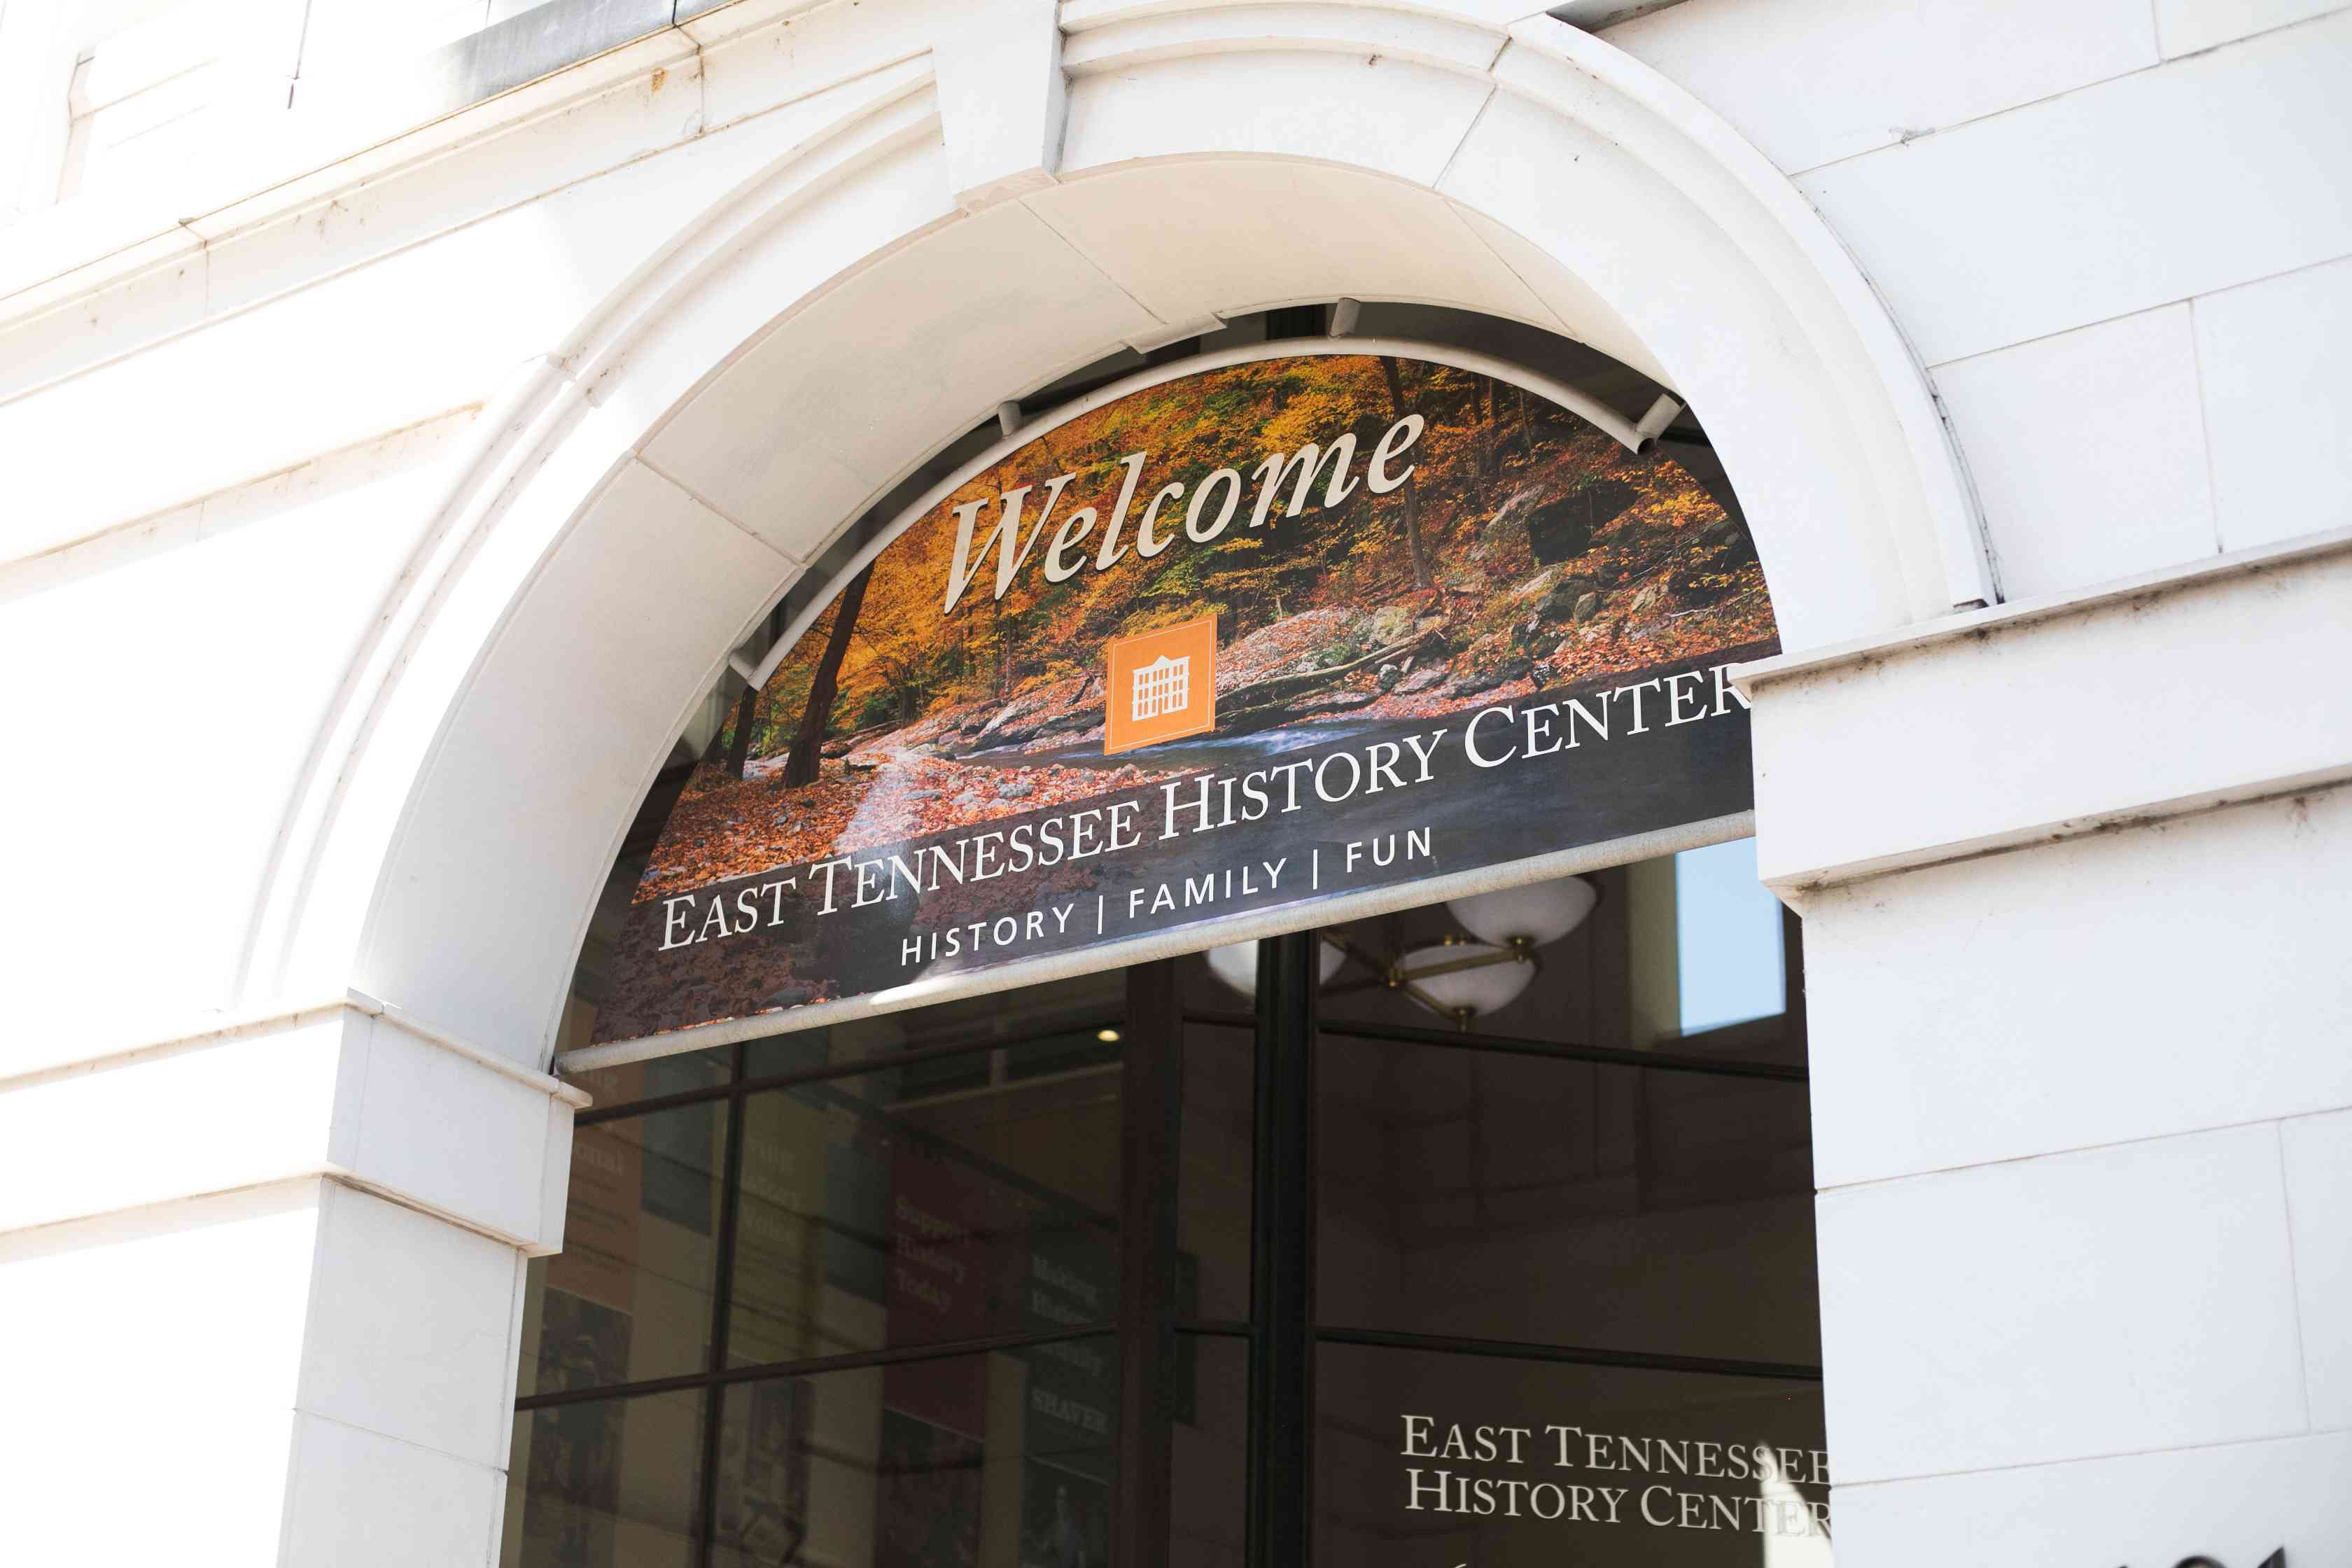 Entrance of the East Tennessee History Center